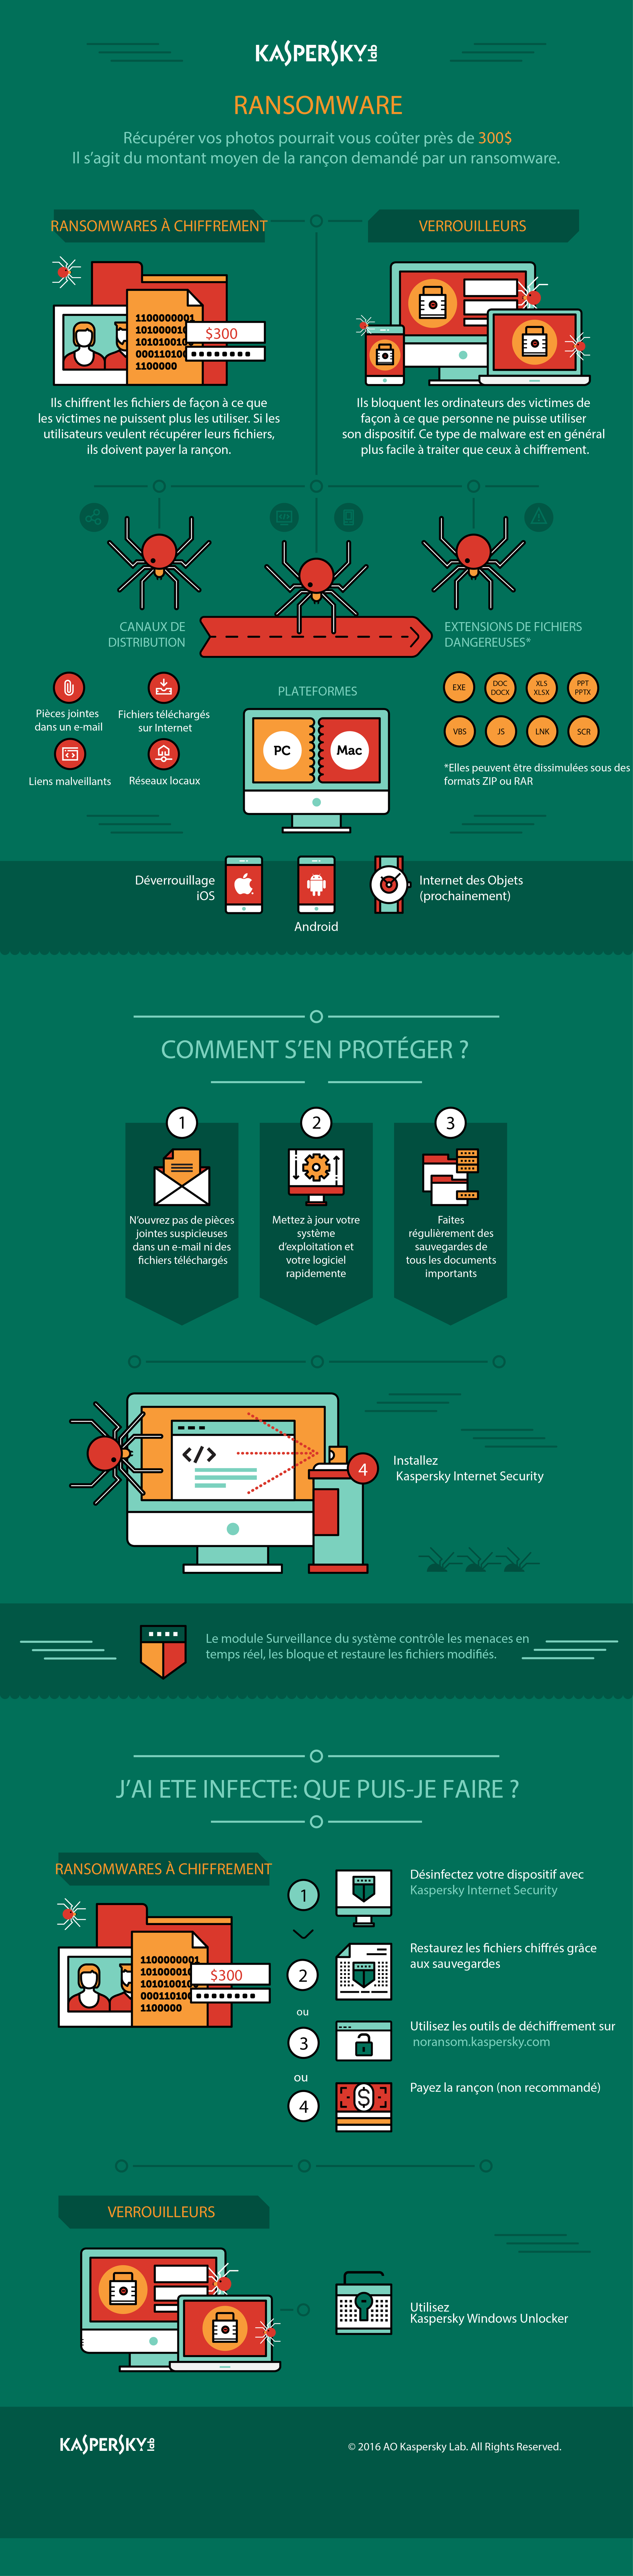 ransomware_fr